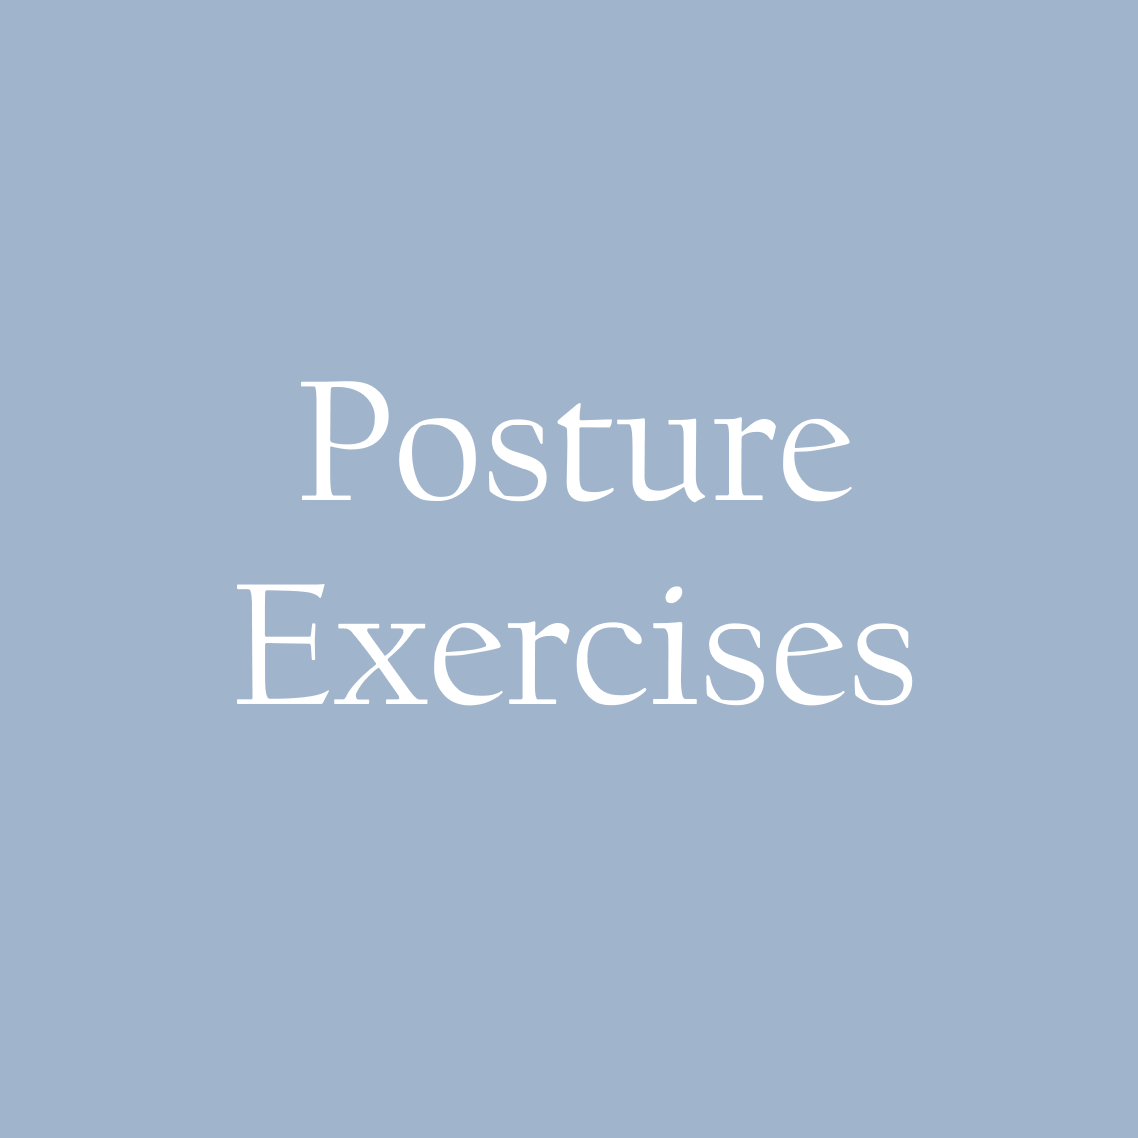 exercise_posture.png